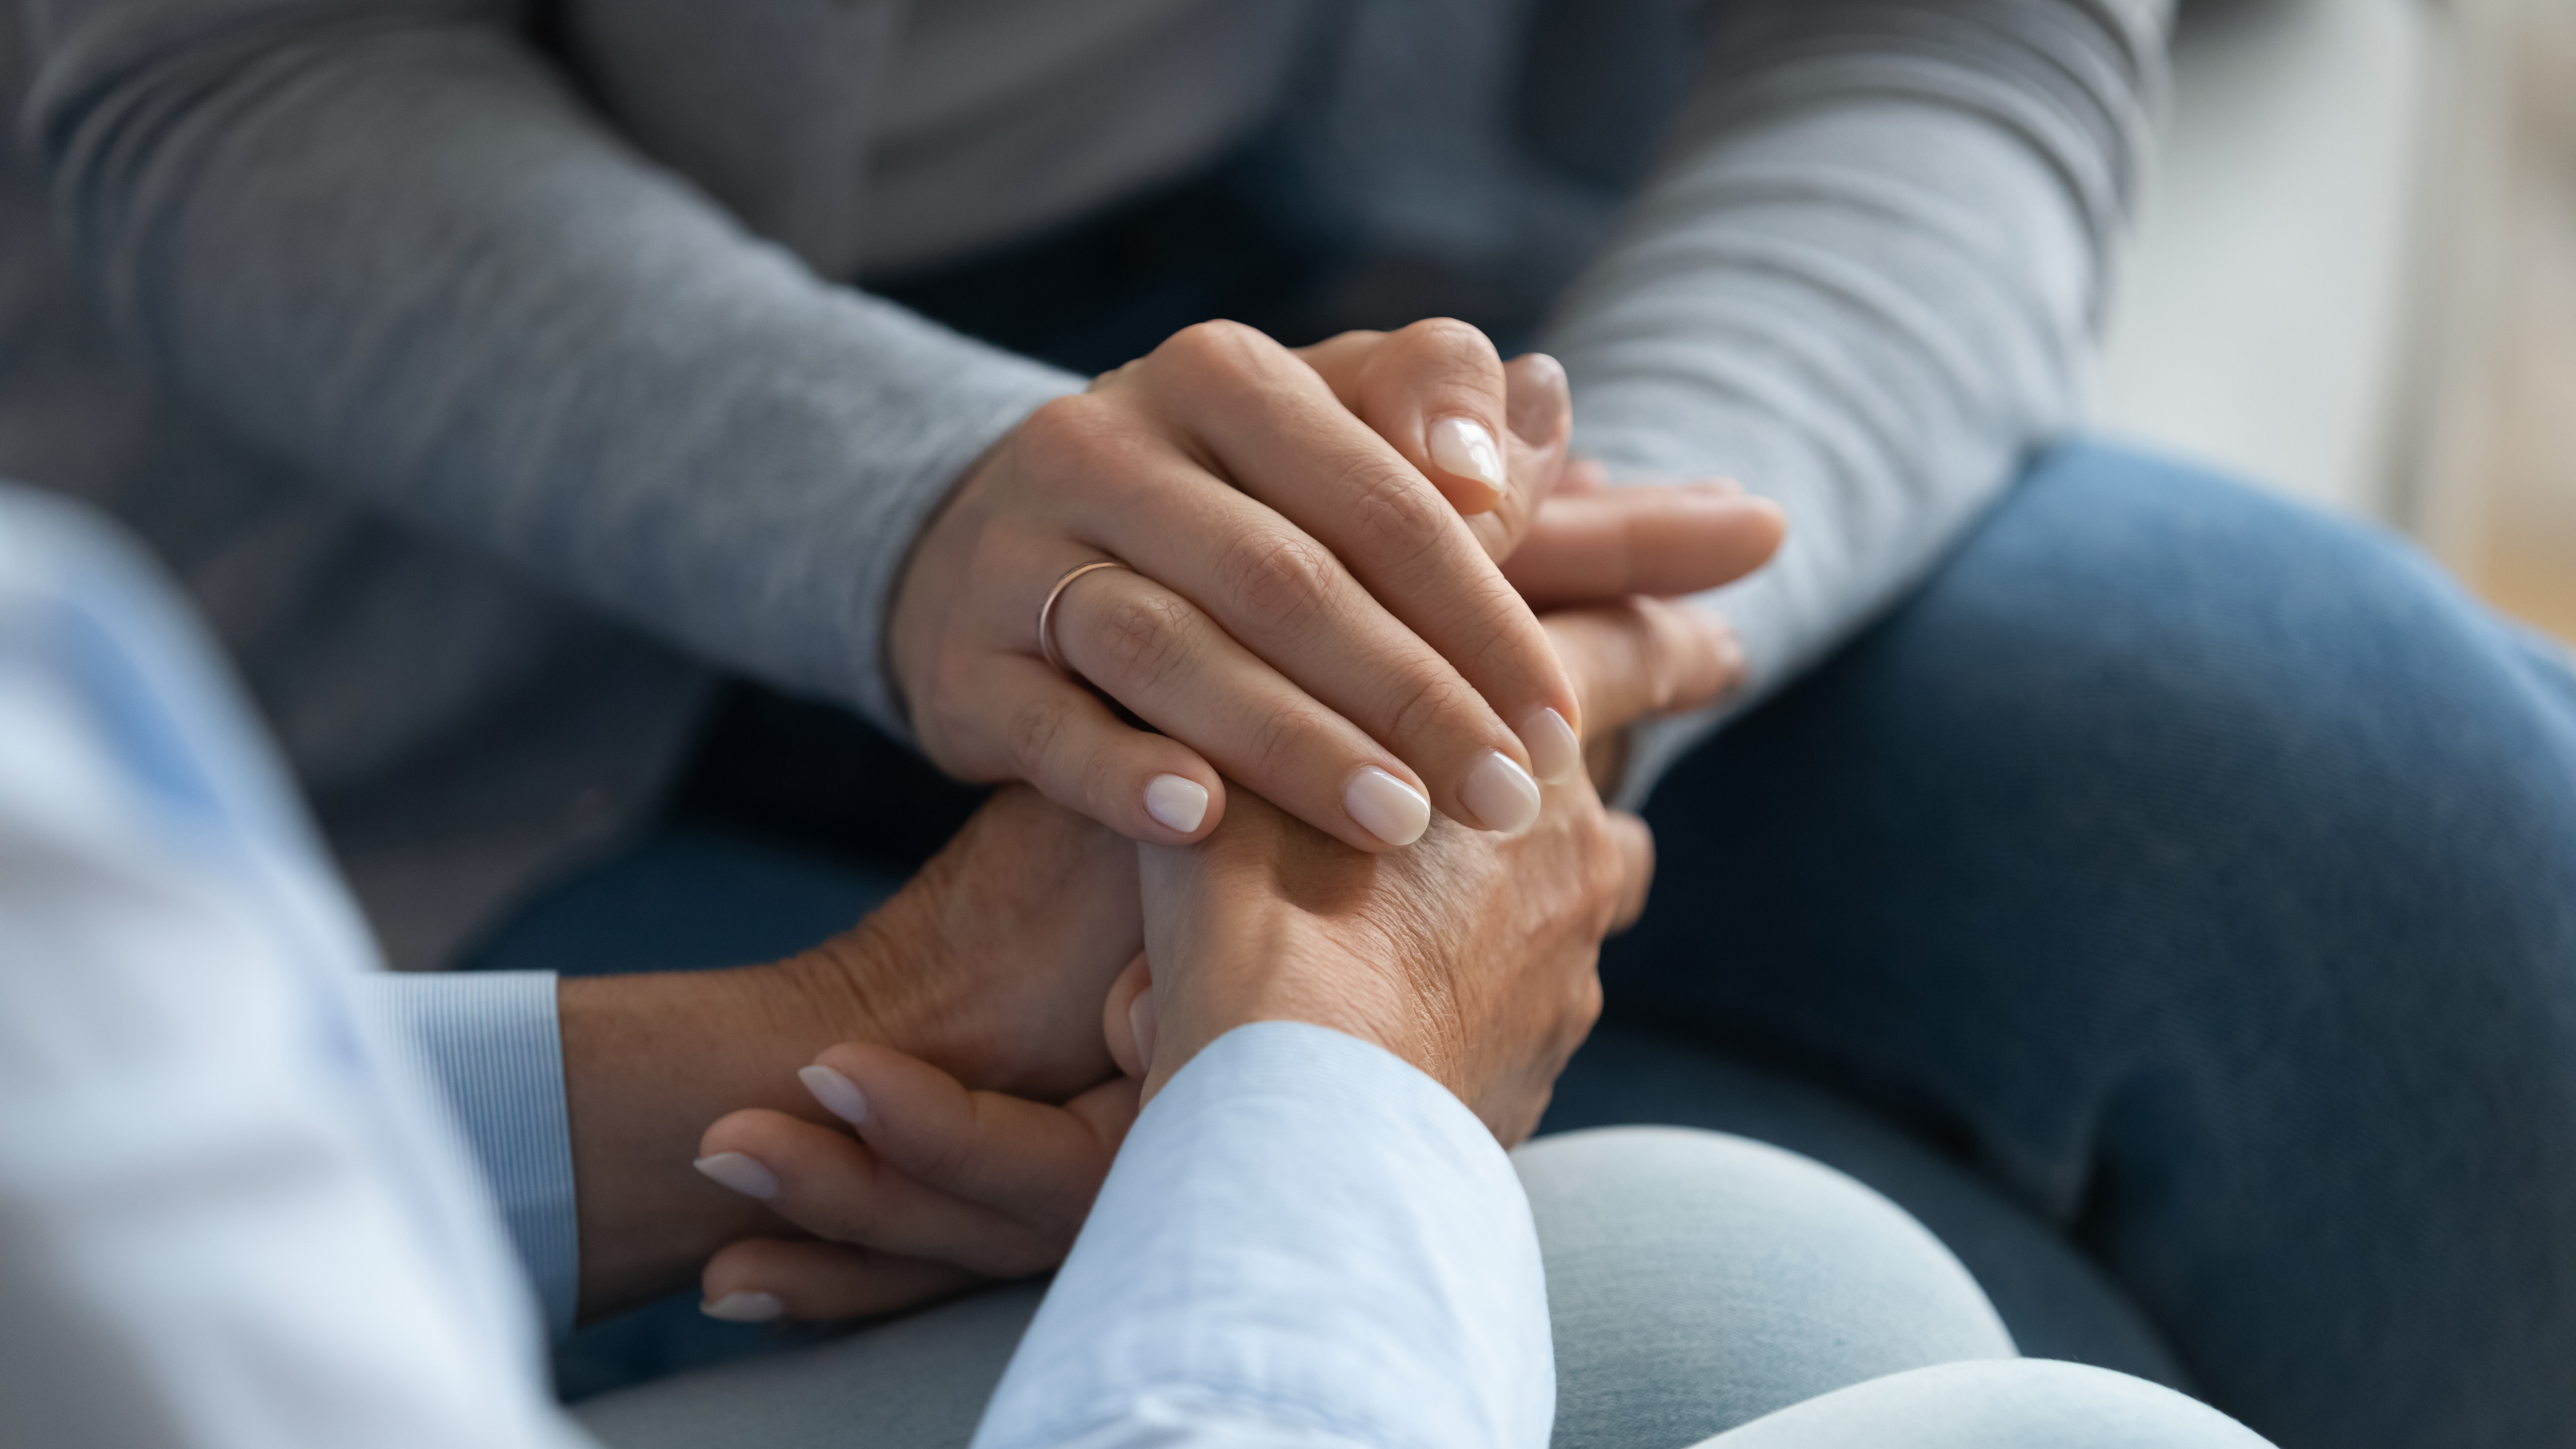 How to Provide Support and Be a Better Caregiver